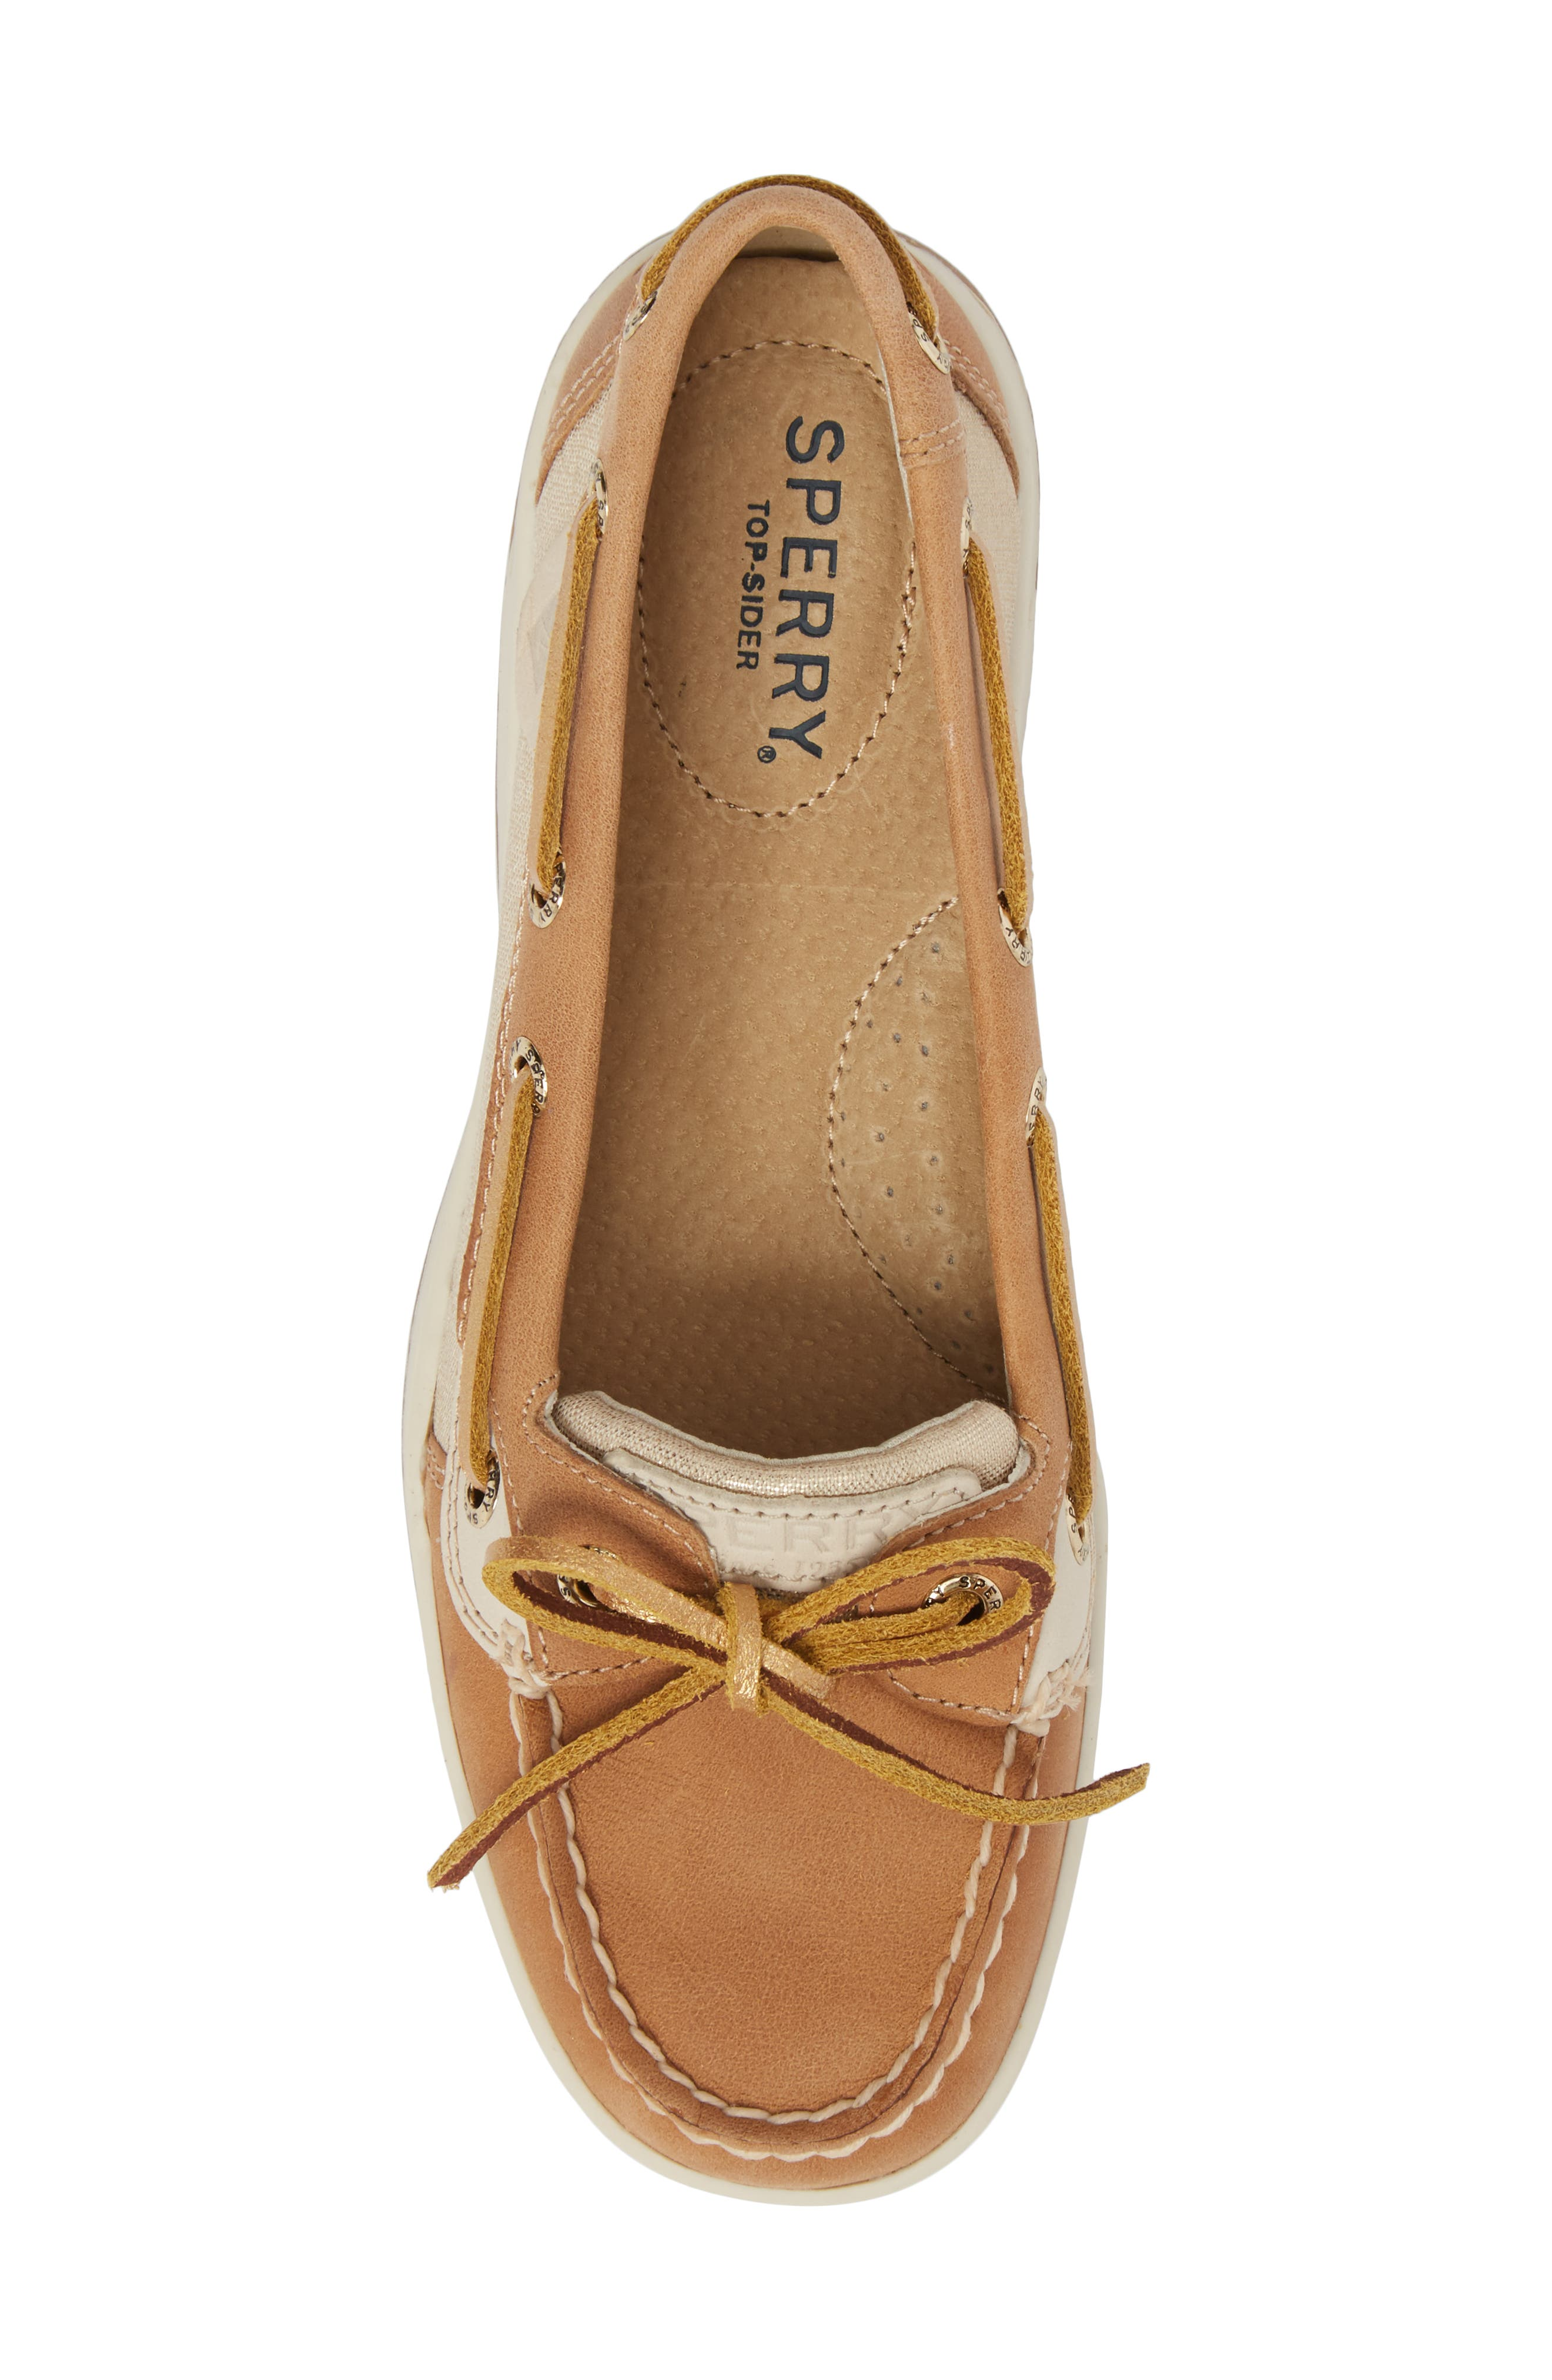 'Angelfish' Boat Shoe,                             Alternate thumbnail 6, color,                             LINEN METALLIC LEATHER